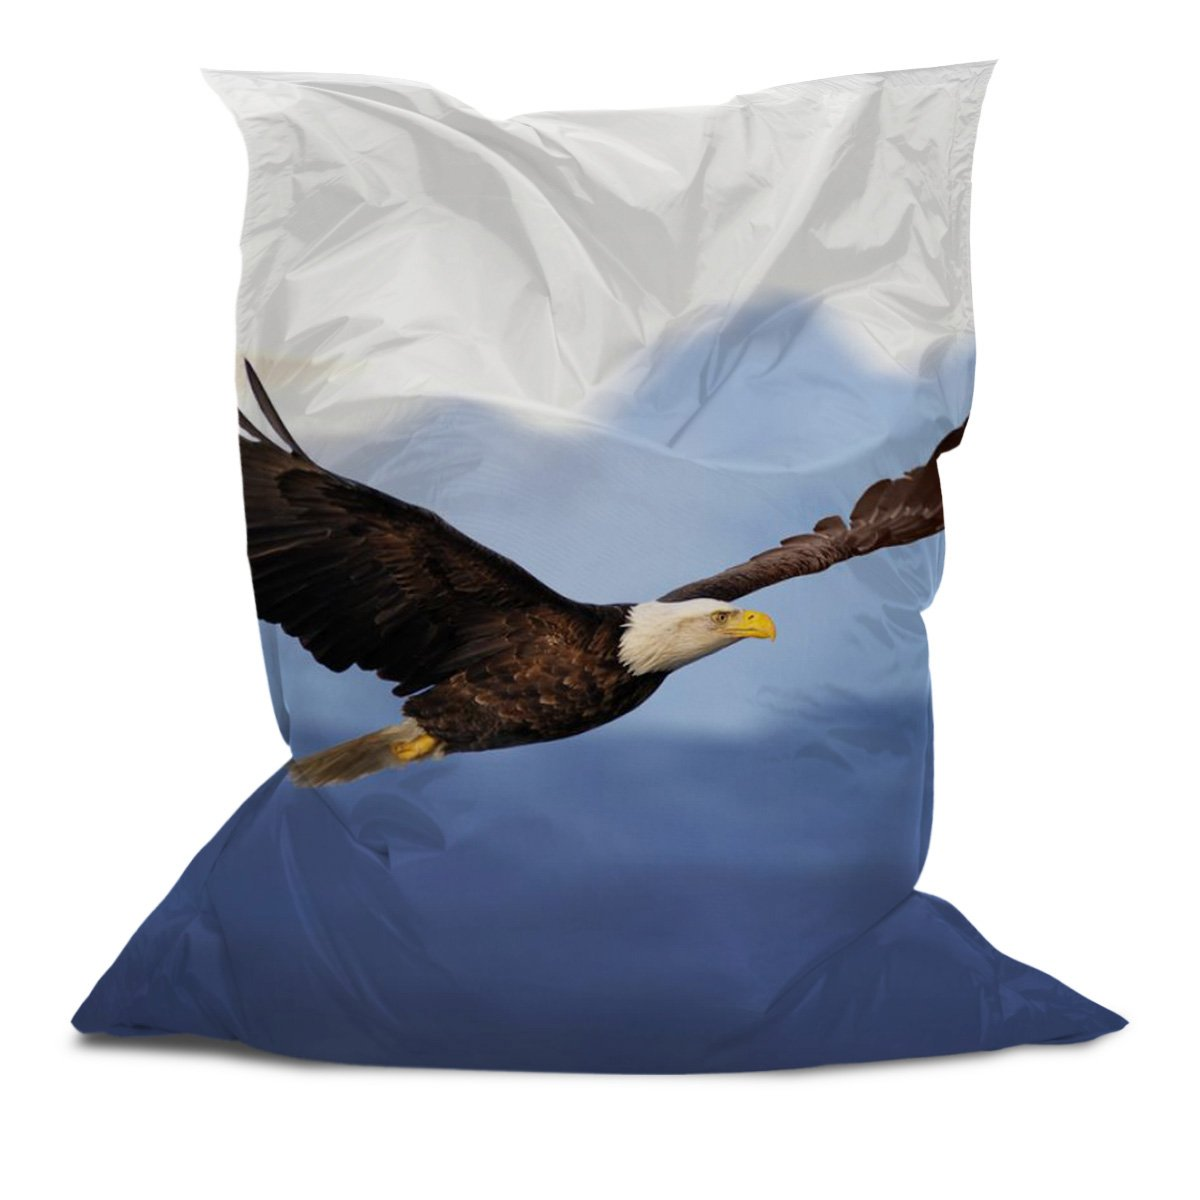 AAA Bean Bags - Comfortable Bean Bag Pillow - Chair - Lounger with Printed American Eagle (5' x 4.4')